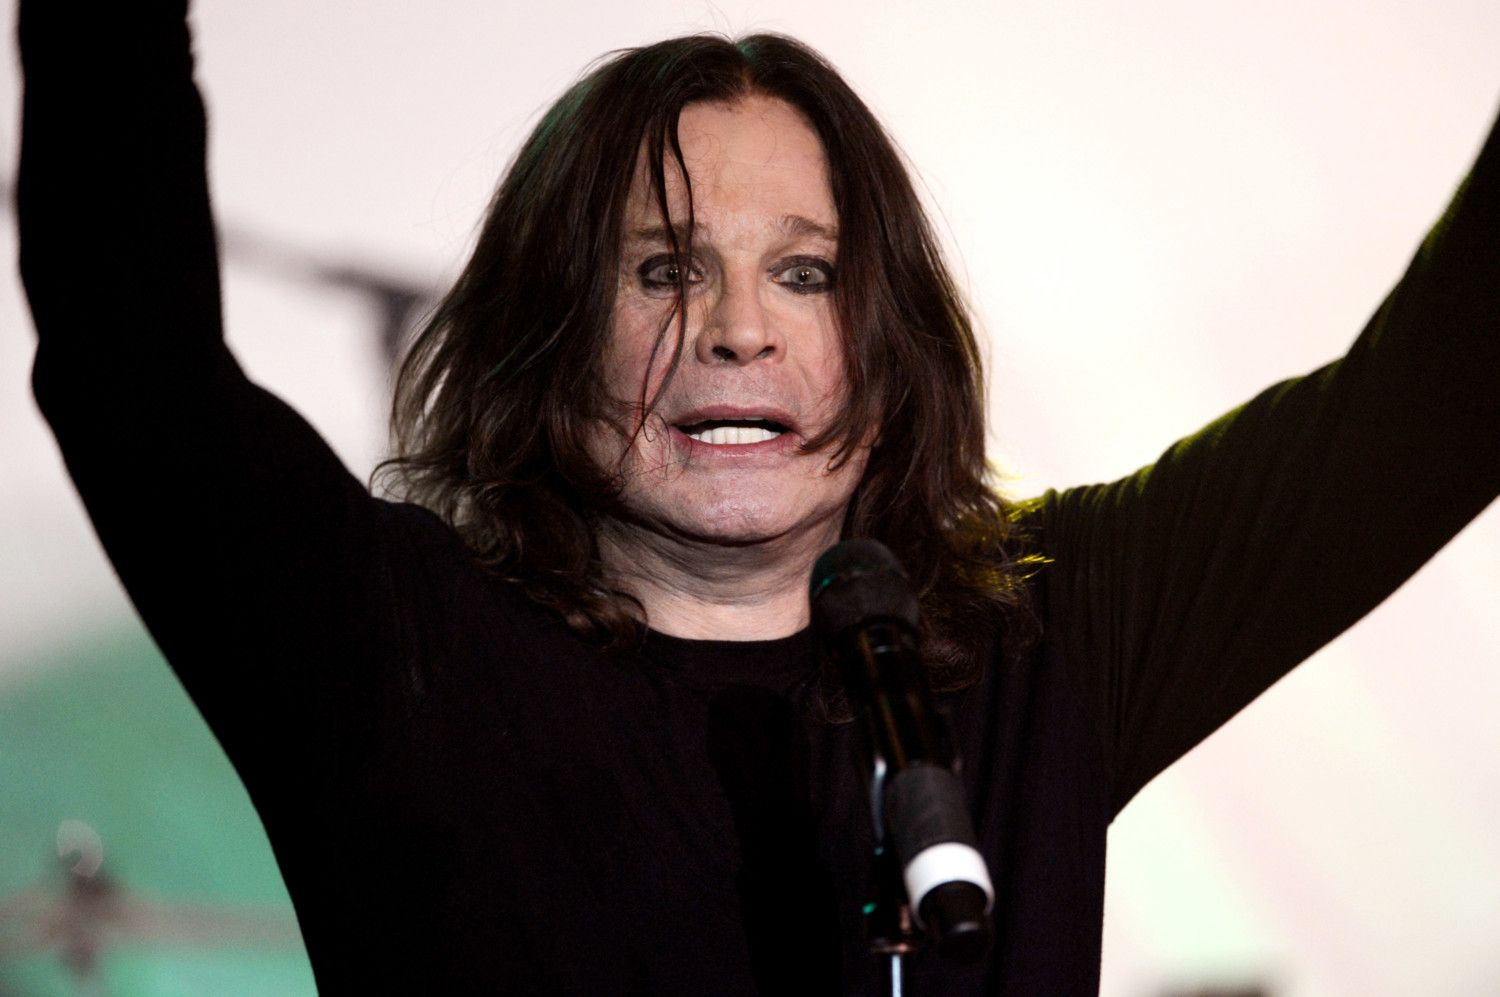 Ozzy Osbourne Opens Up About His Parkinson's Diagnosis in